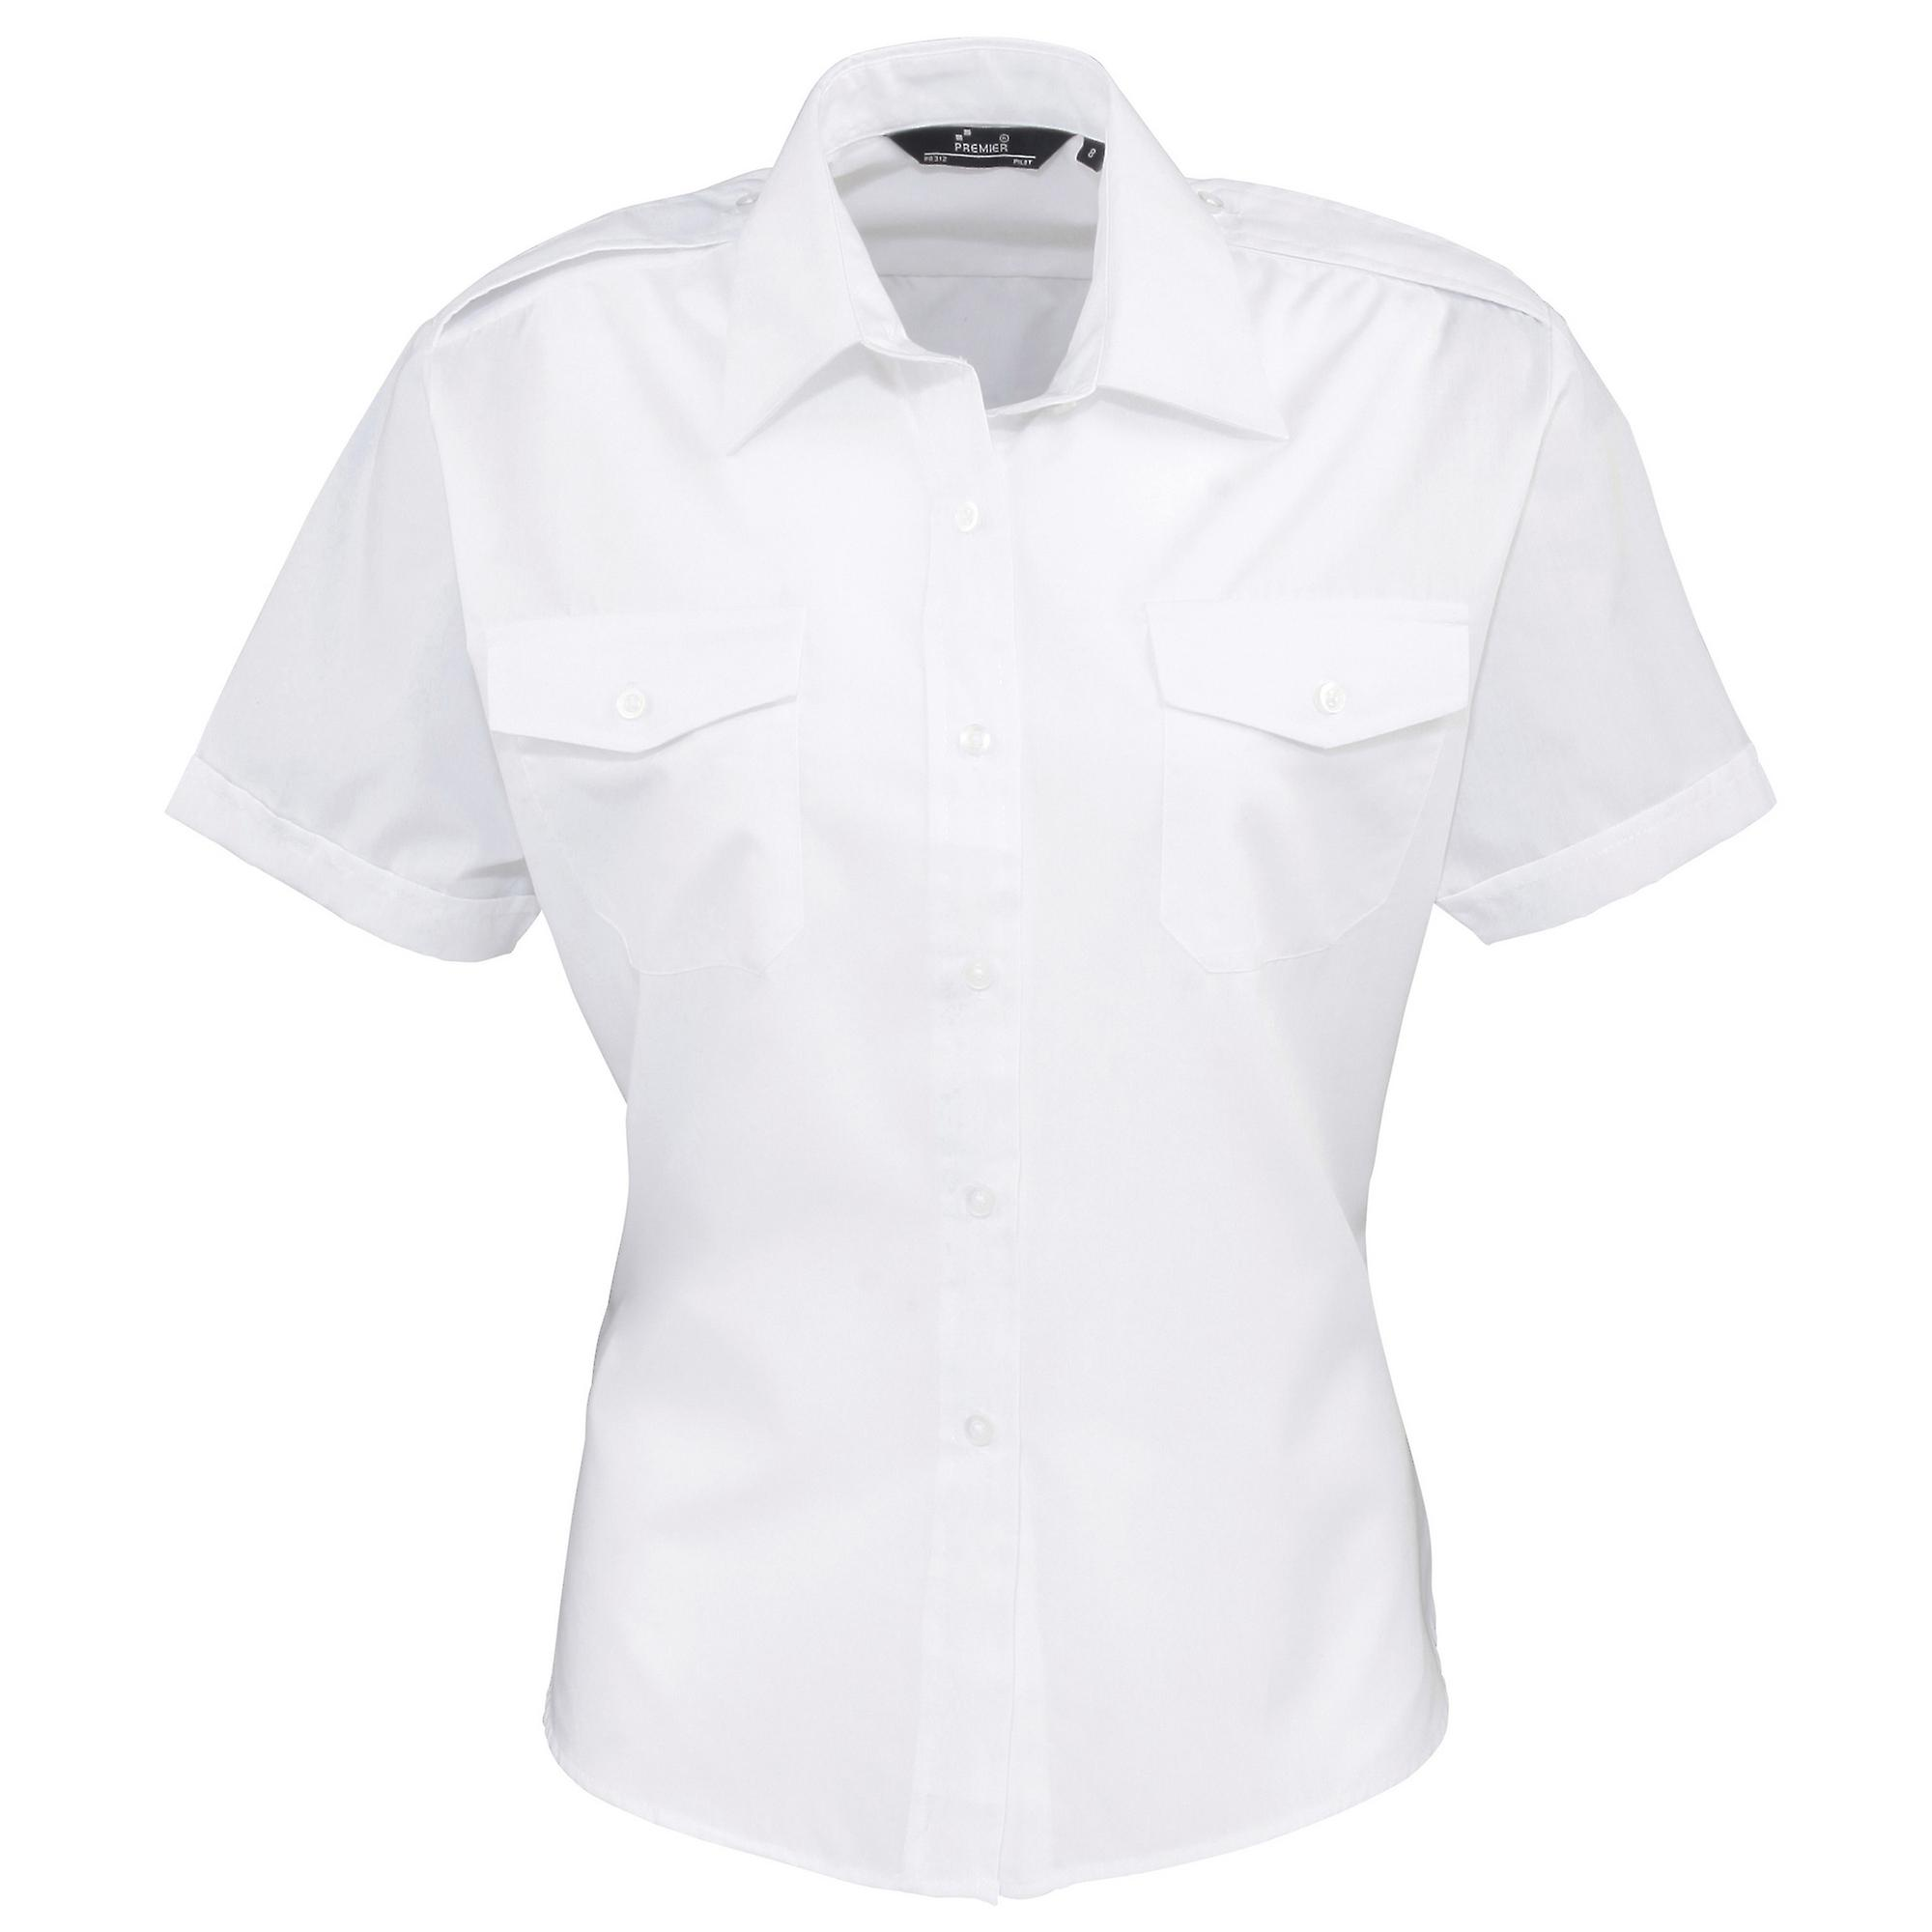 c5d80526cb7 Premier Womens Ladies Short Sleeve Pilot Blouse   Plain Work Shirt ...